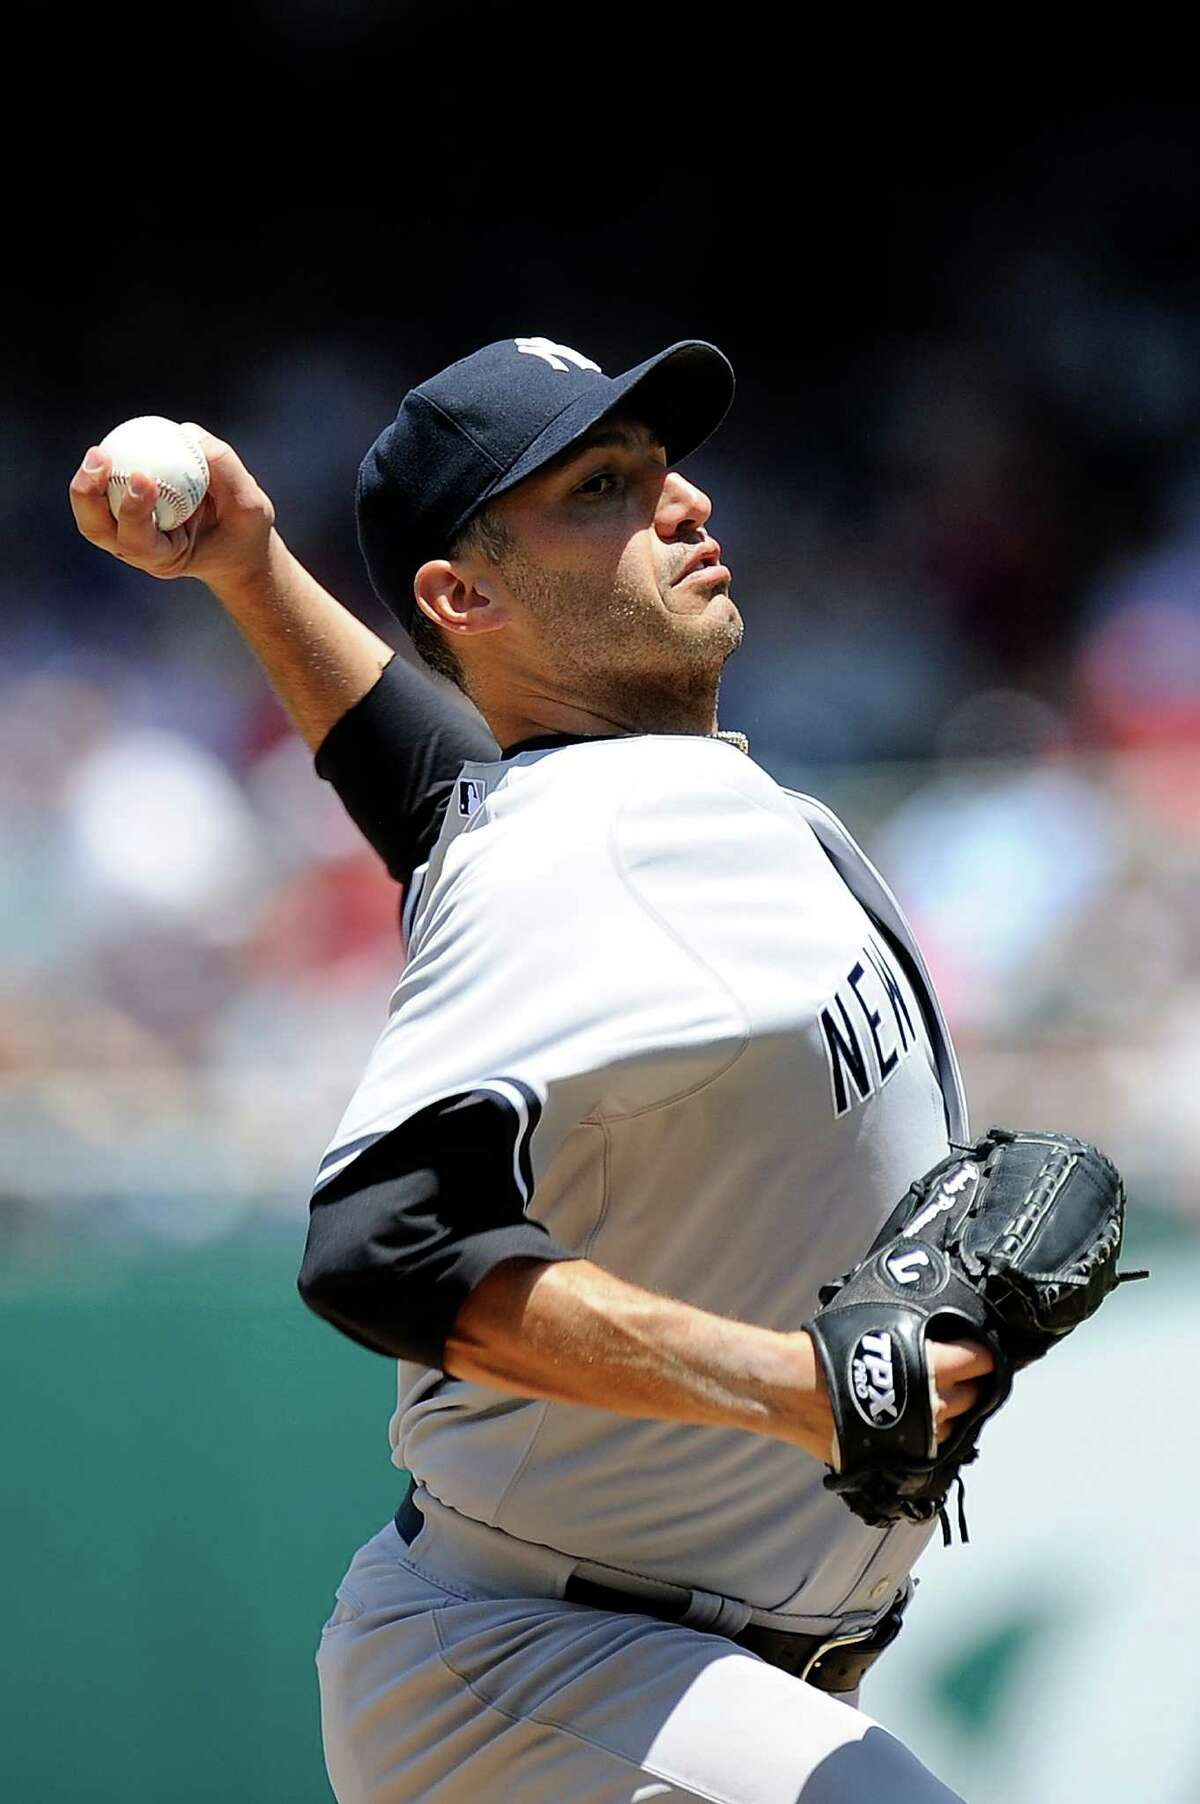 WASHINGTON, DC - JUNE 16: Andy Pettitte #46 of the New York Yankees throws a pitch against the Washington Nationals at Nationals Park on June 16, 2012 in Washington, DC. (Photo by Patrick McDermott/Getty Images)